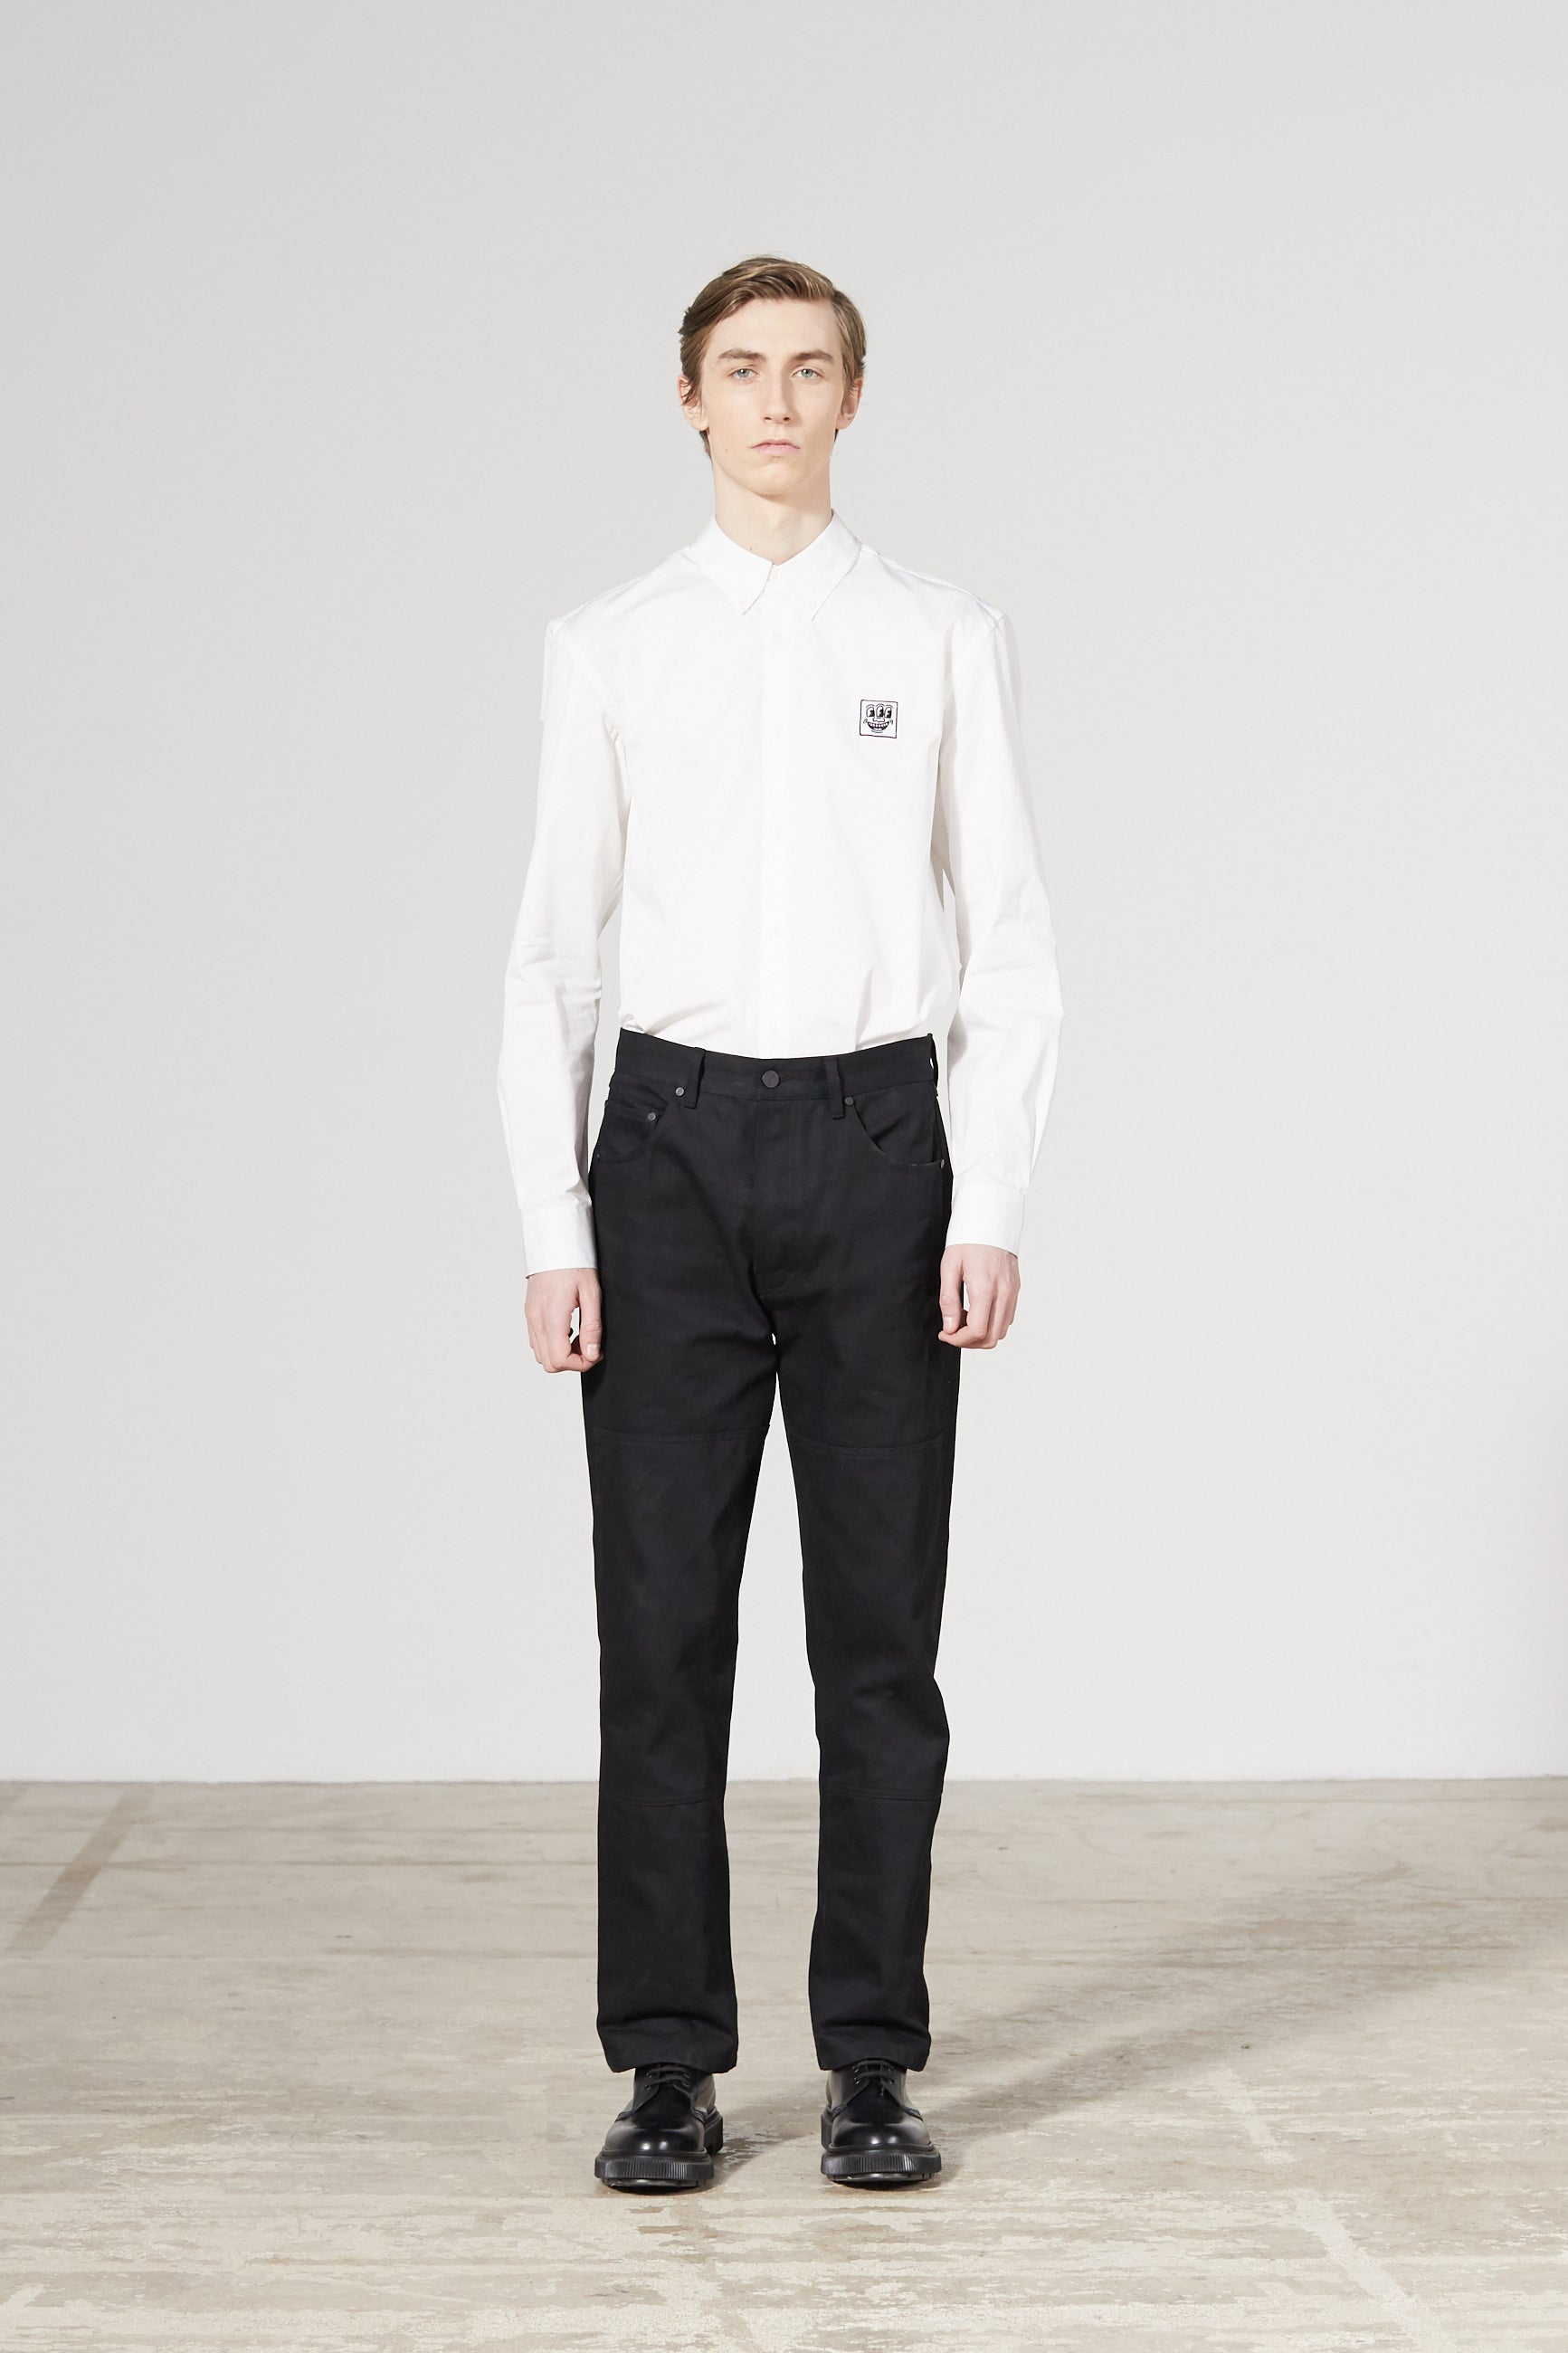 CORNER DENIM KEITH HARING BLACK TROUSERS